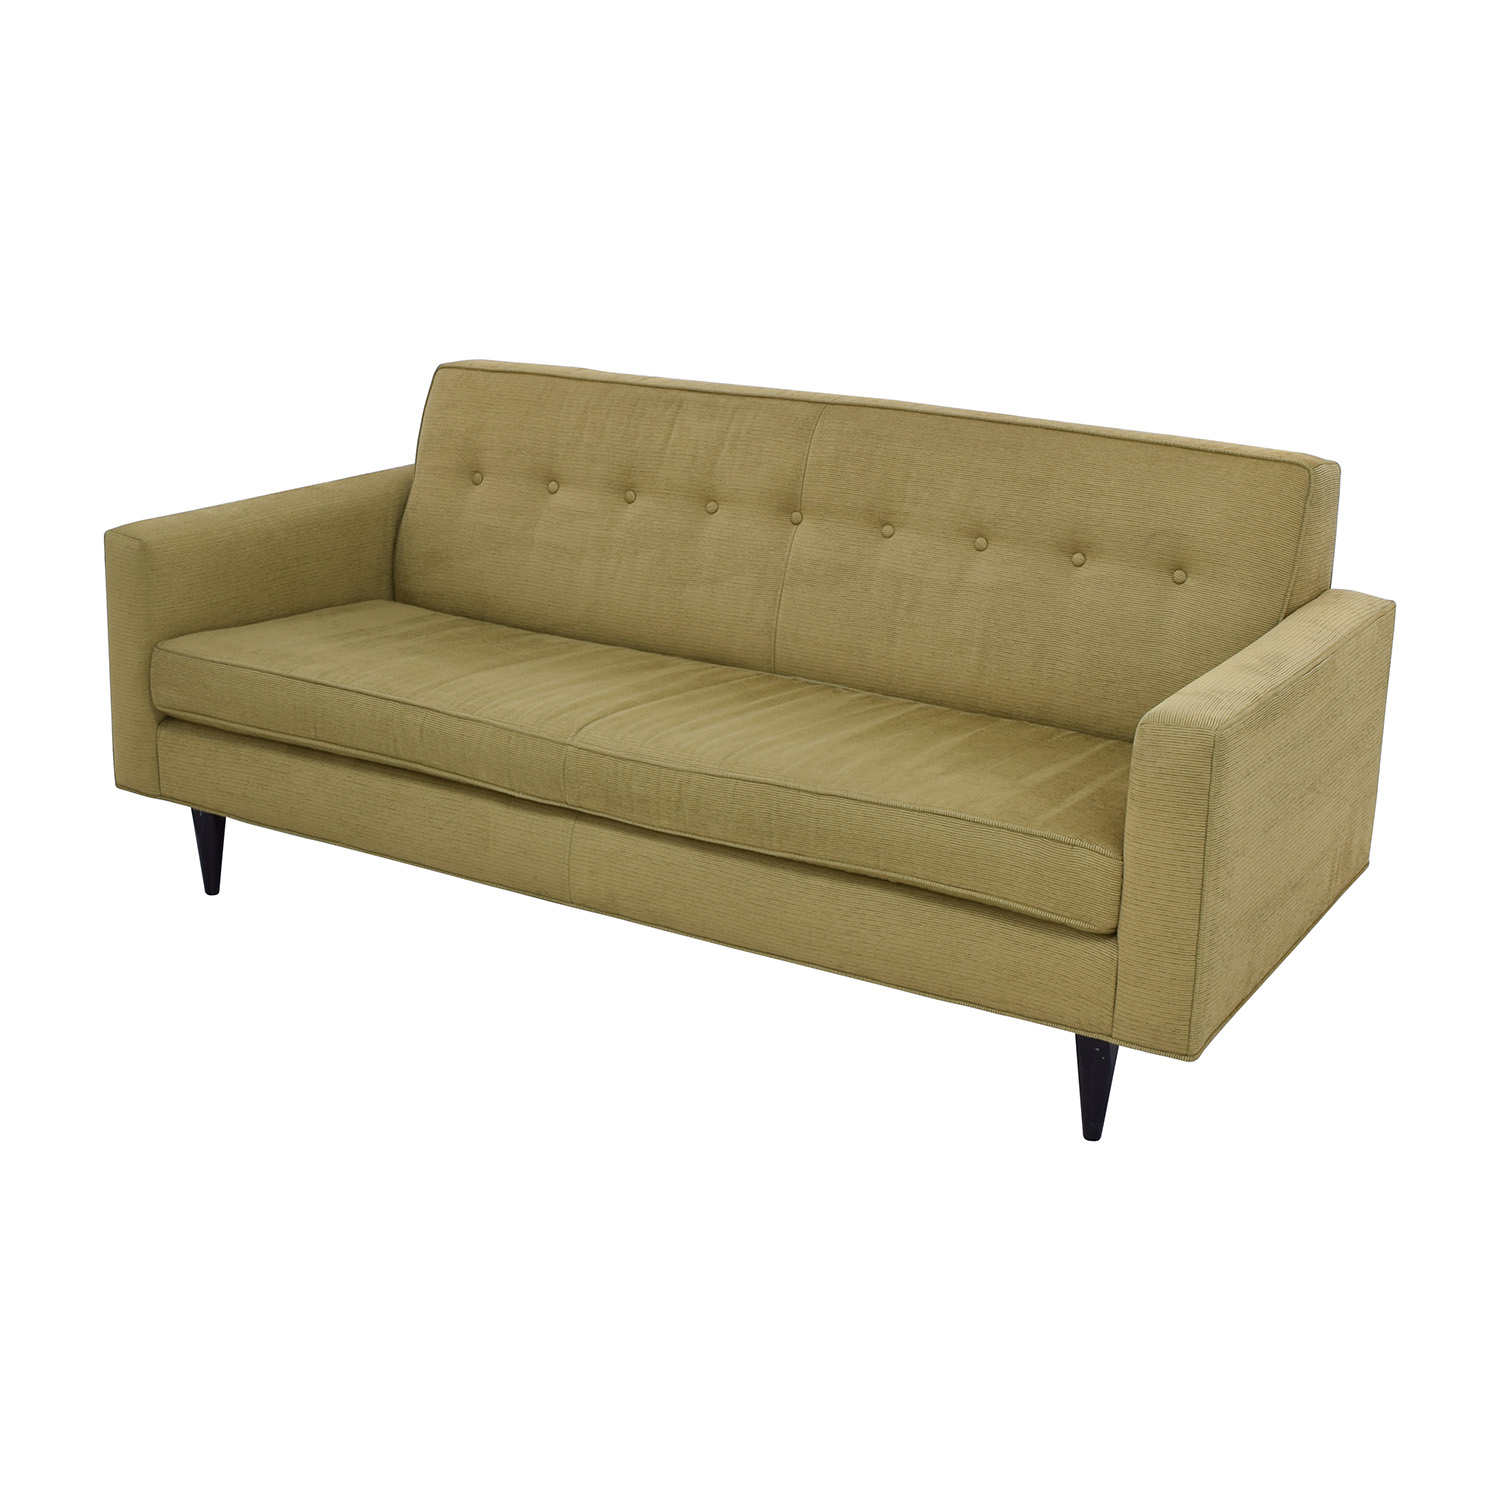 59 Off Design Within Reach Design Within Reach Bantam Tufted Green Sofa Sofas